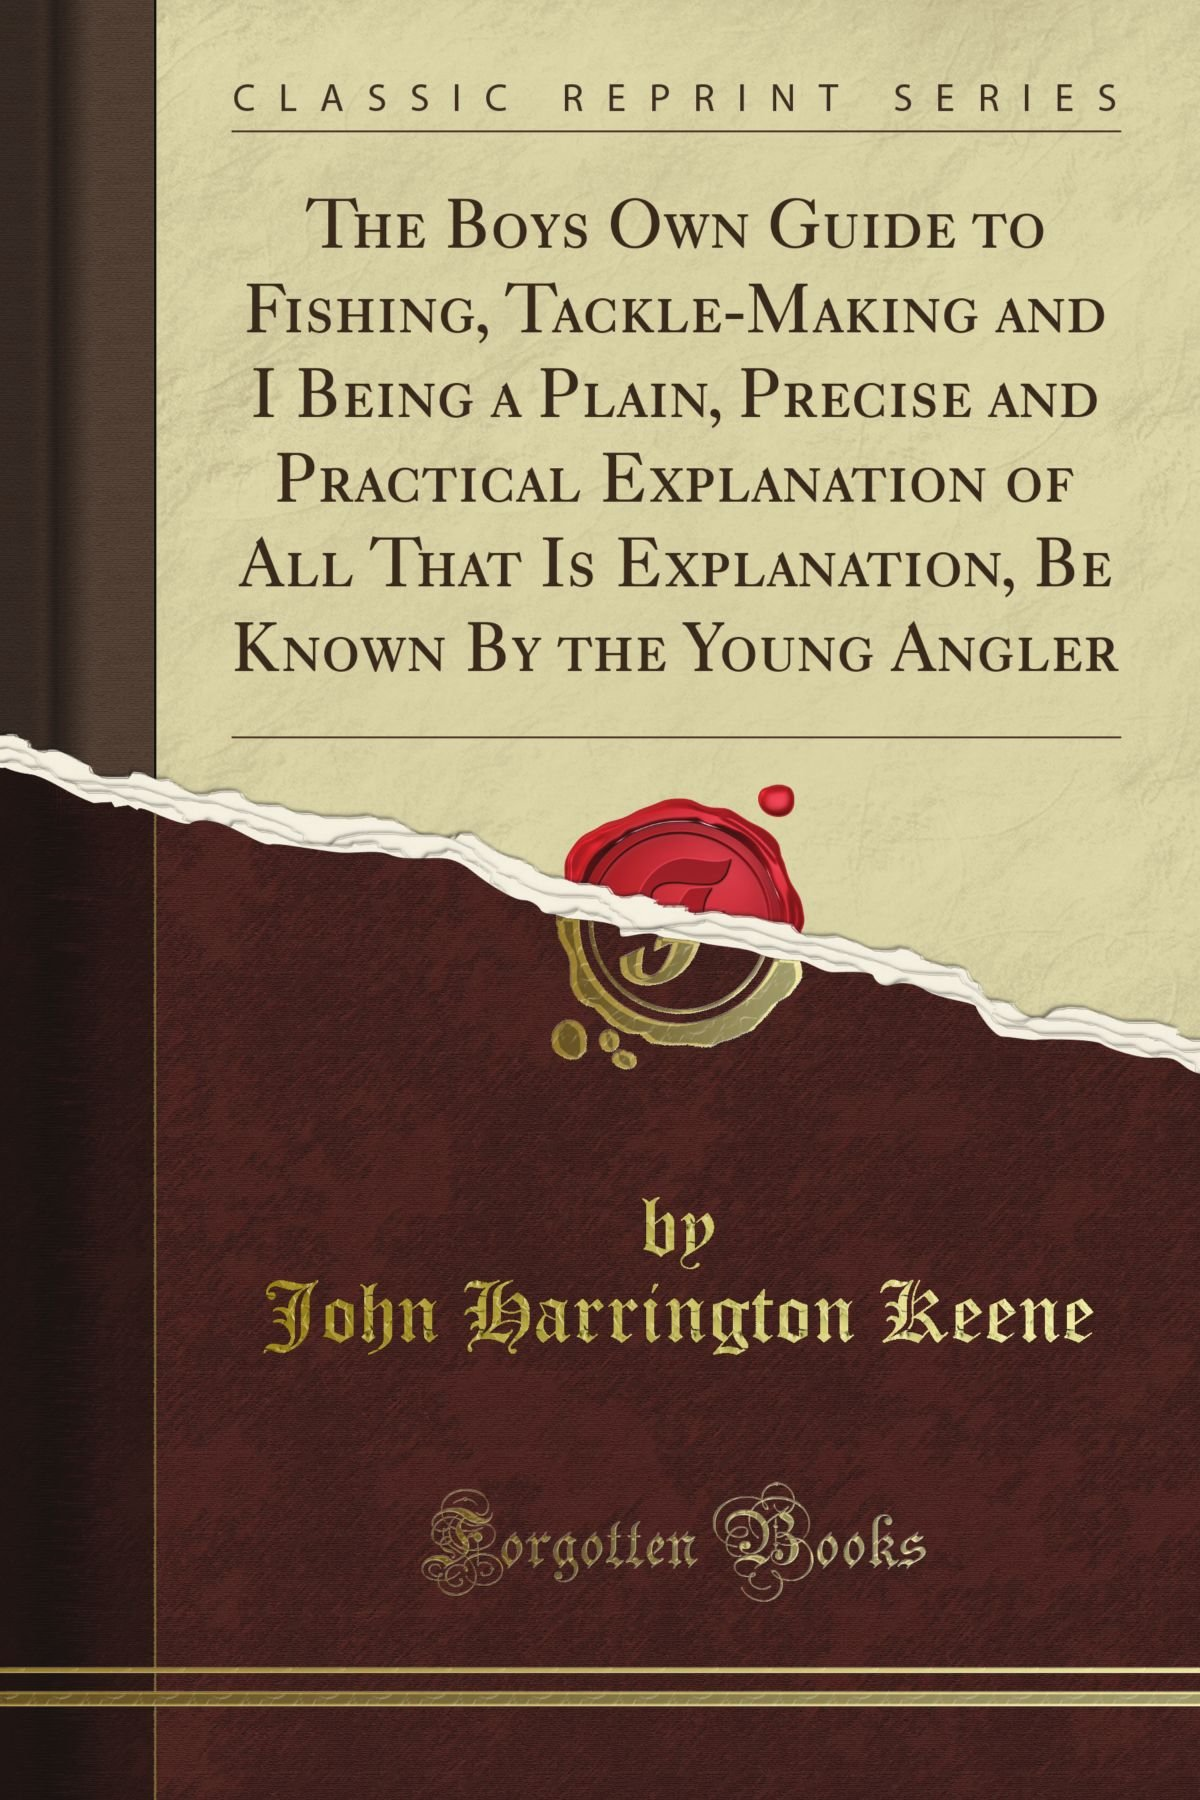 Download The Boy's Own Guide to Fishing, Tackle-Making and I Being a Plain, Precise and Practical Explanation of All That Is Explanation, Be Known By the Young Angler (Classic Reprint) ebook